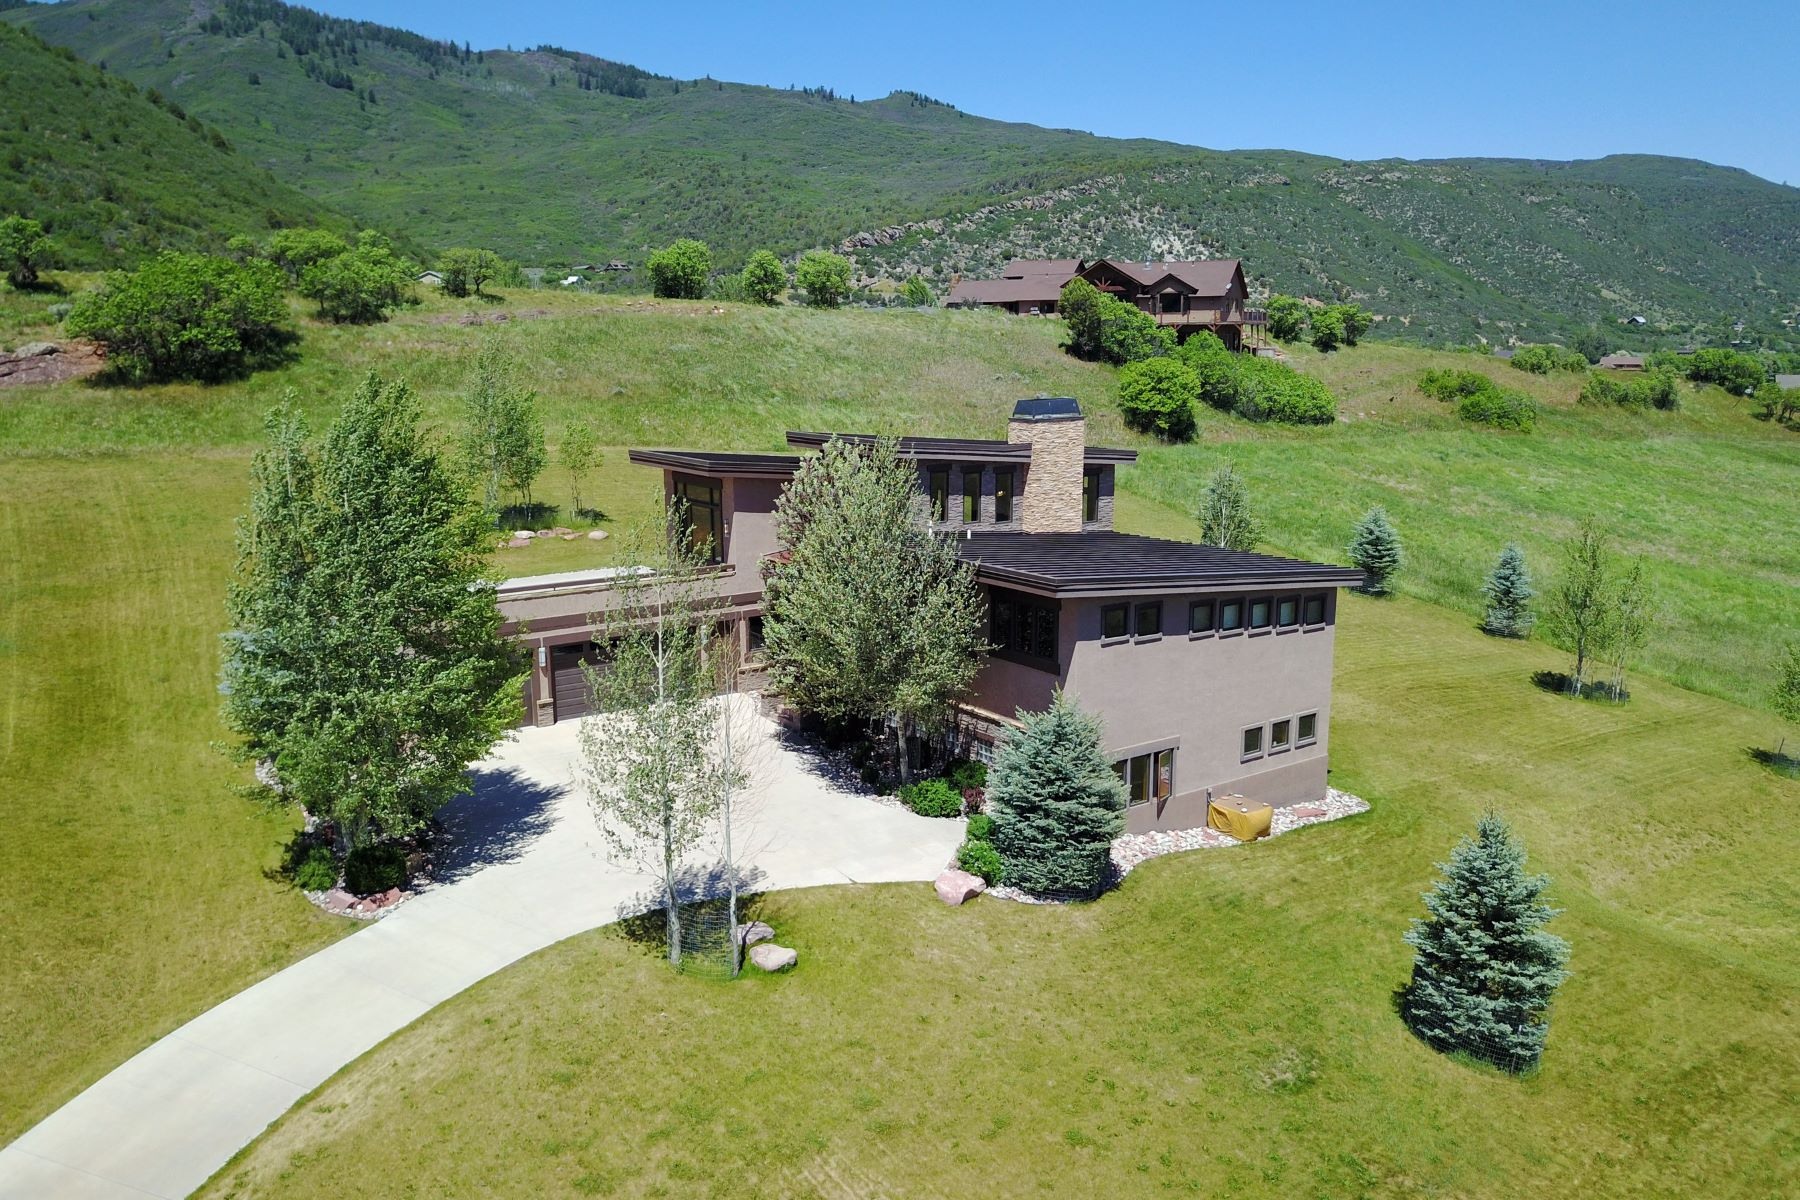 Single Family Home for Sale at Mountain Modern Home in Springridge Reserve 341 Spring View Drive, Glenwood Springs, Colorado, 81601 United States